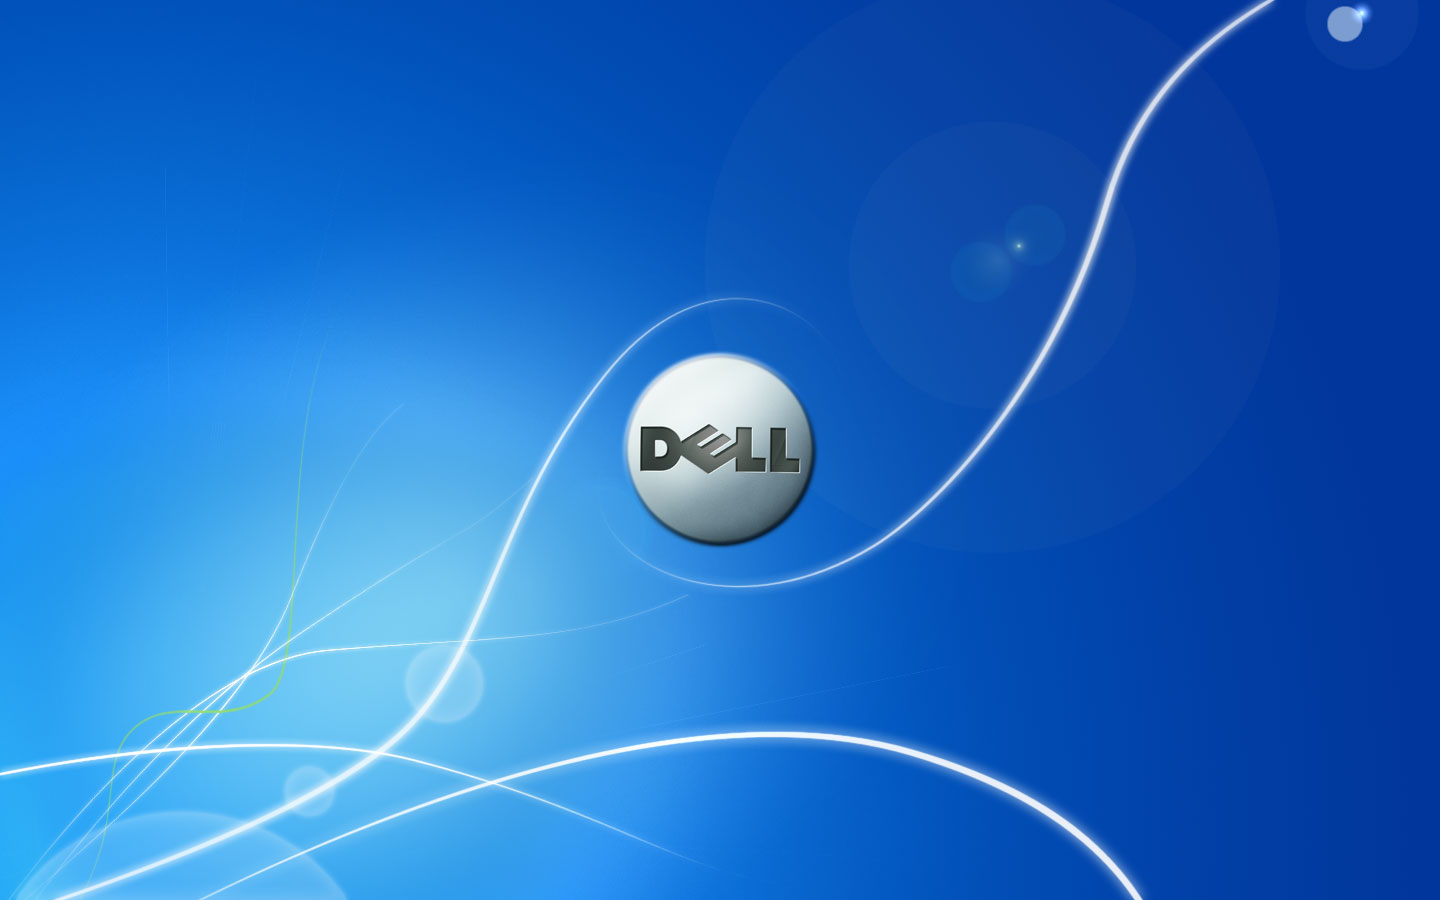 dell wallpaper hd for windows8 wall2u